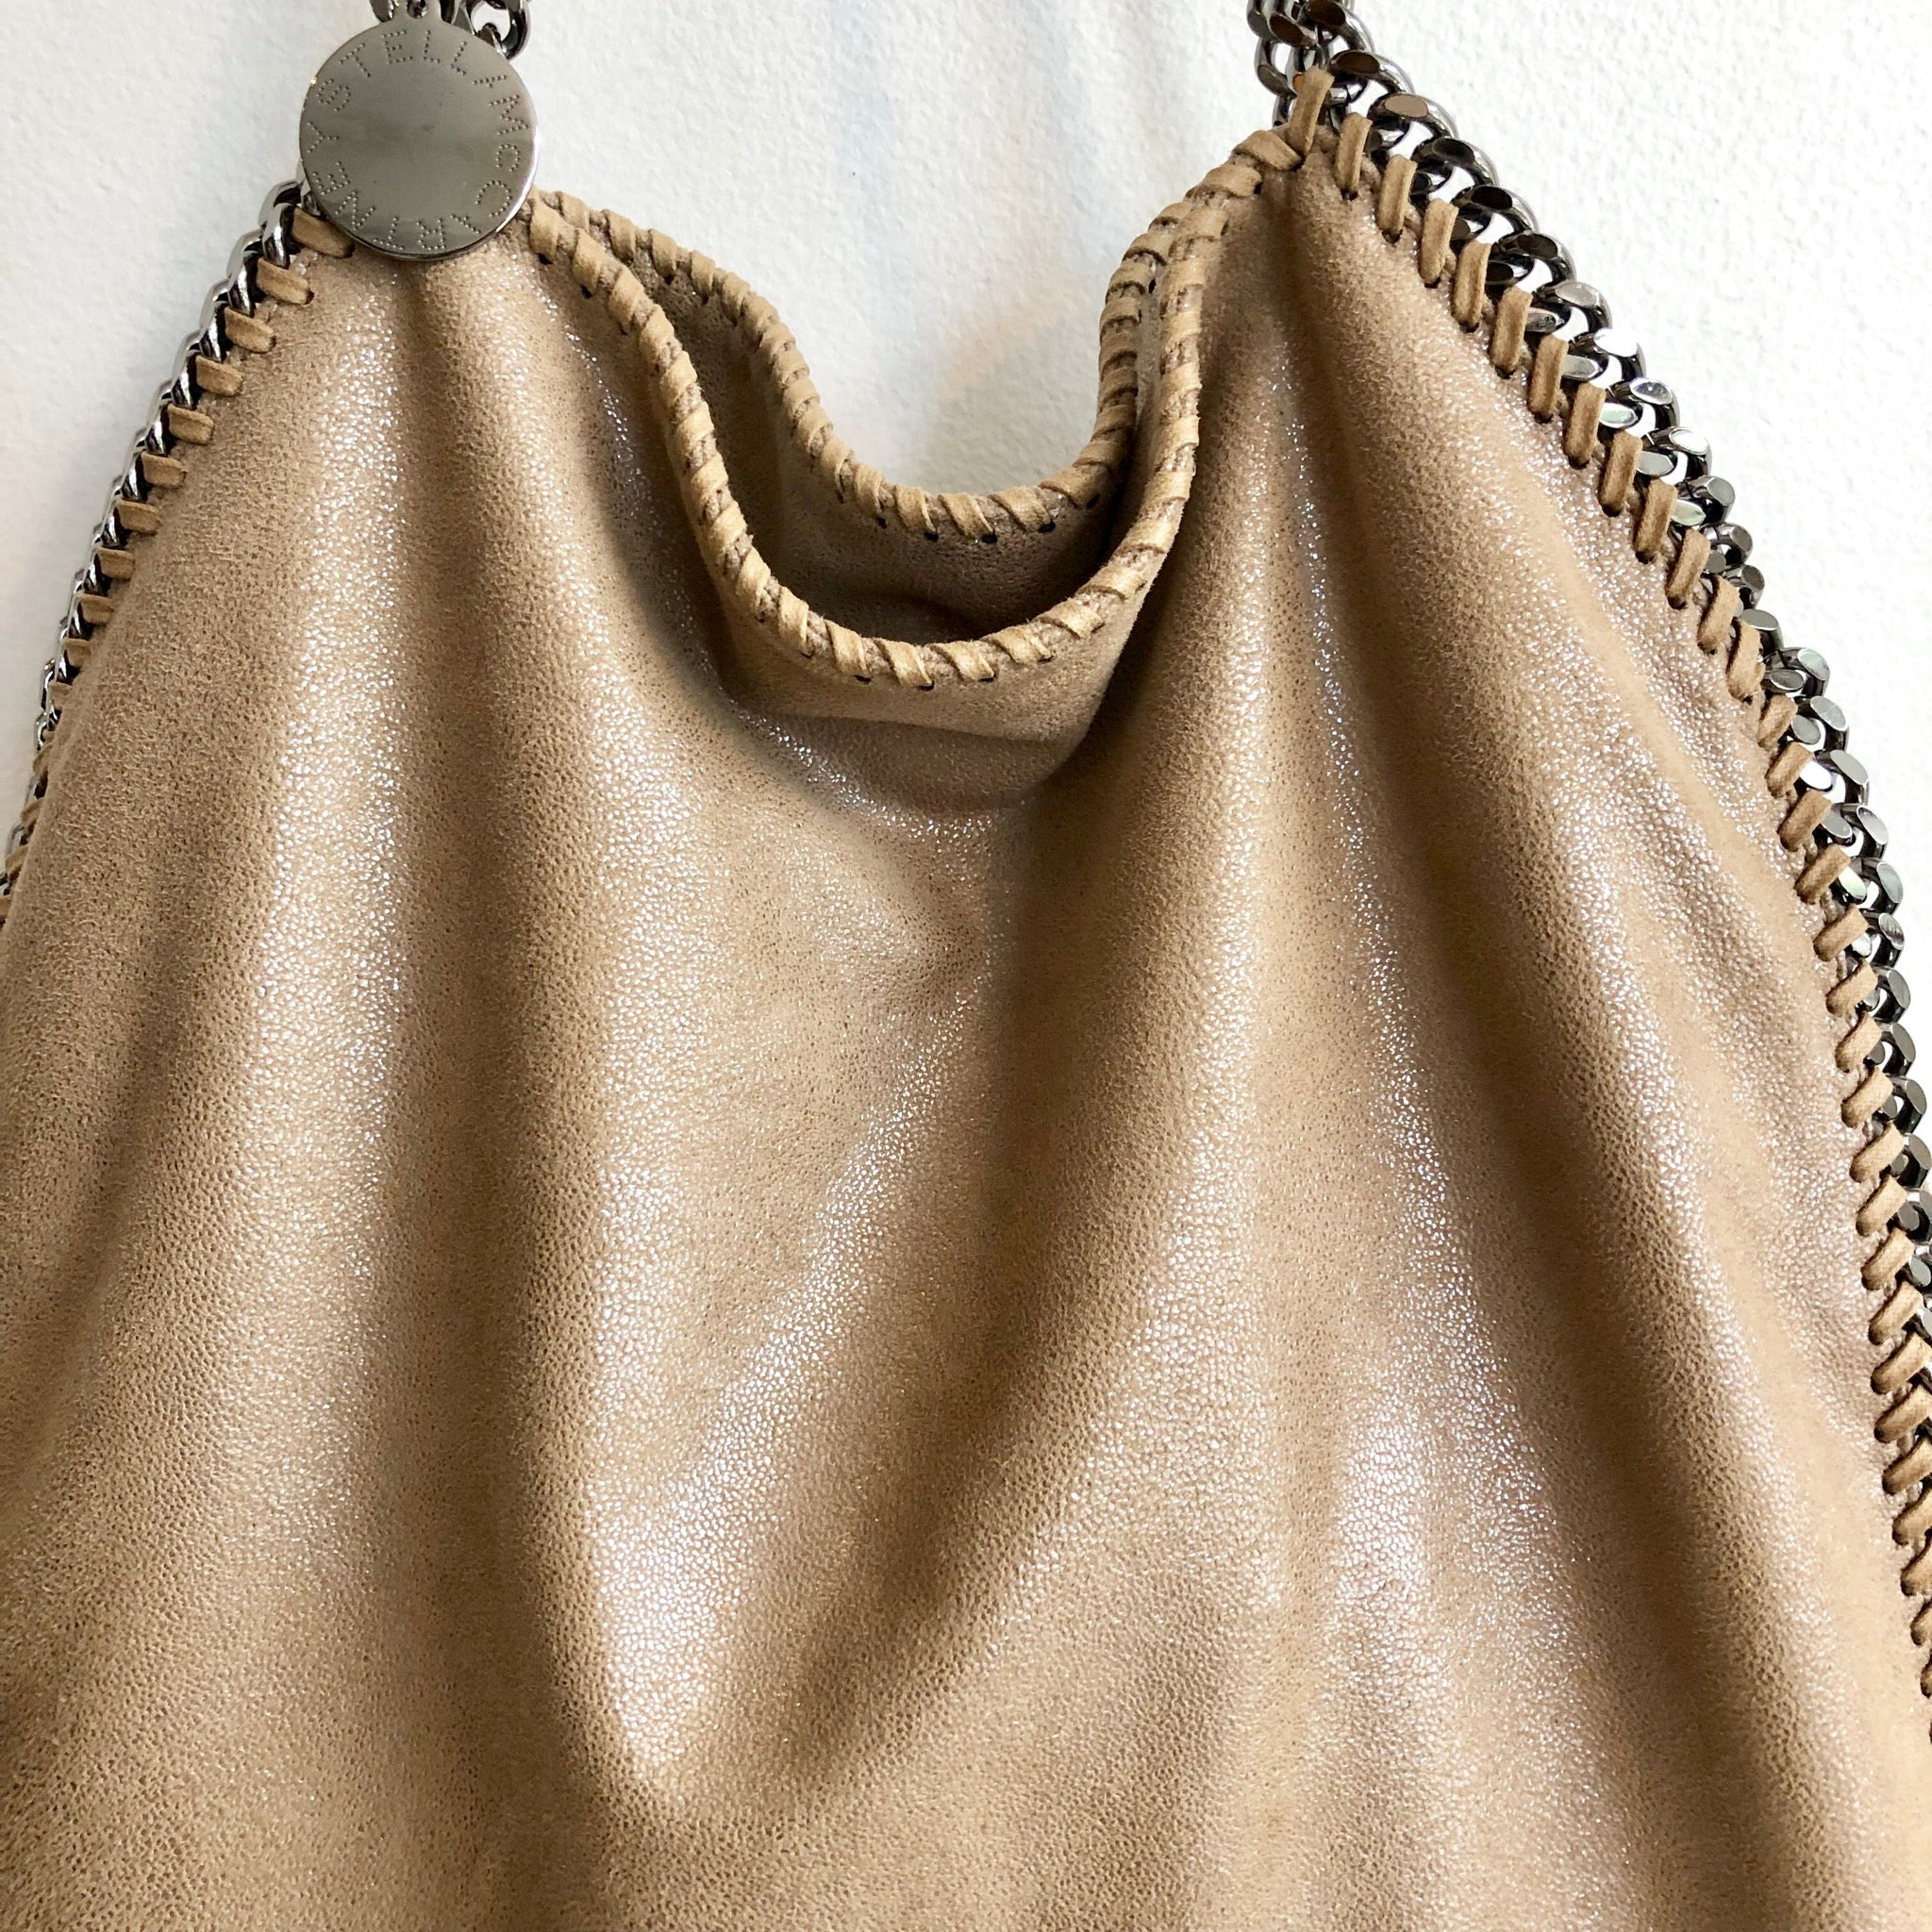 2nd payment of two Authentic STELLA MCCARTNEY Falabella Beige Chain Tote